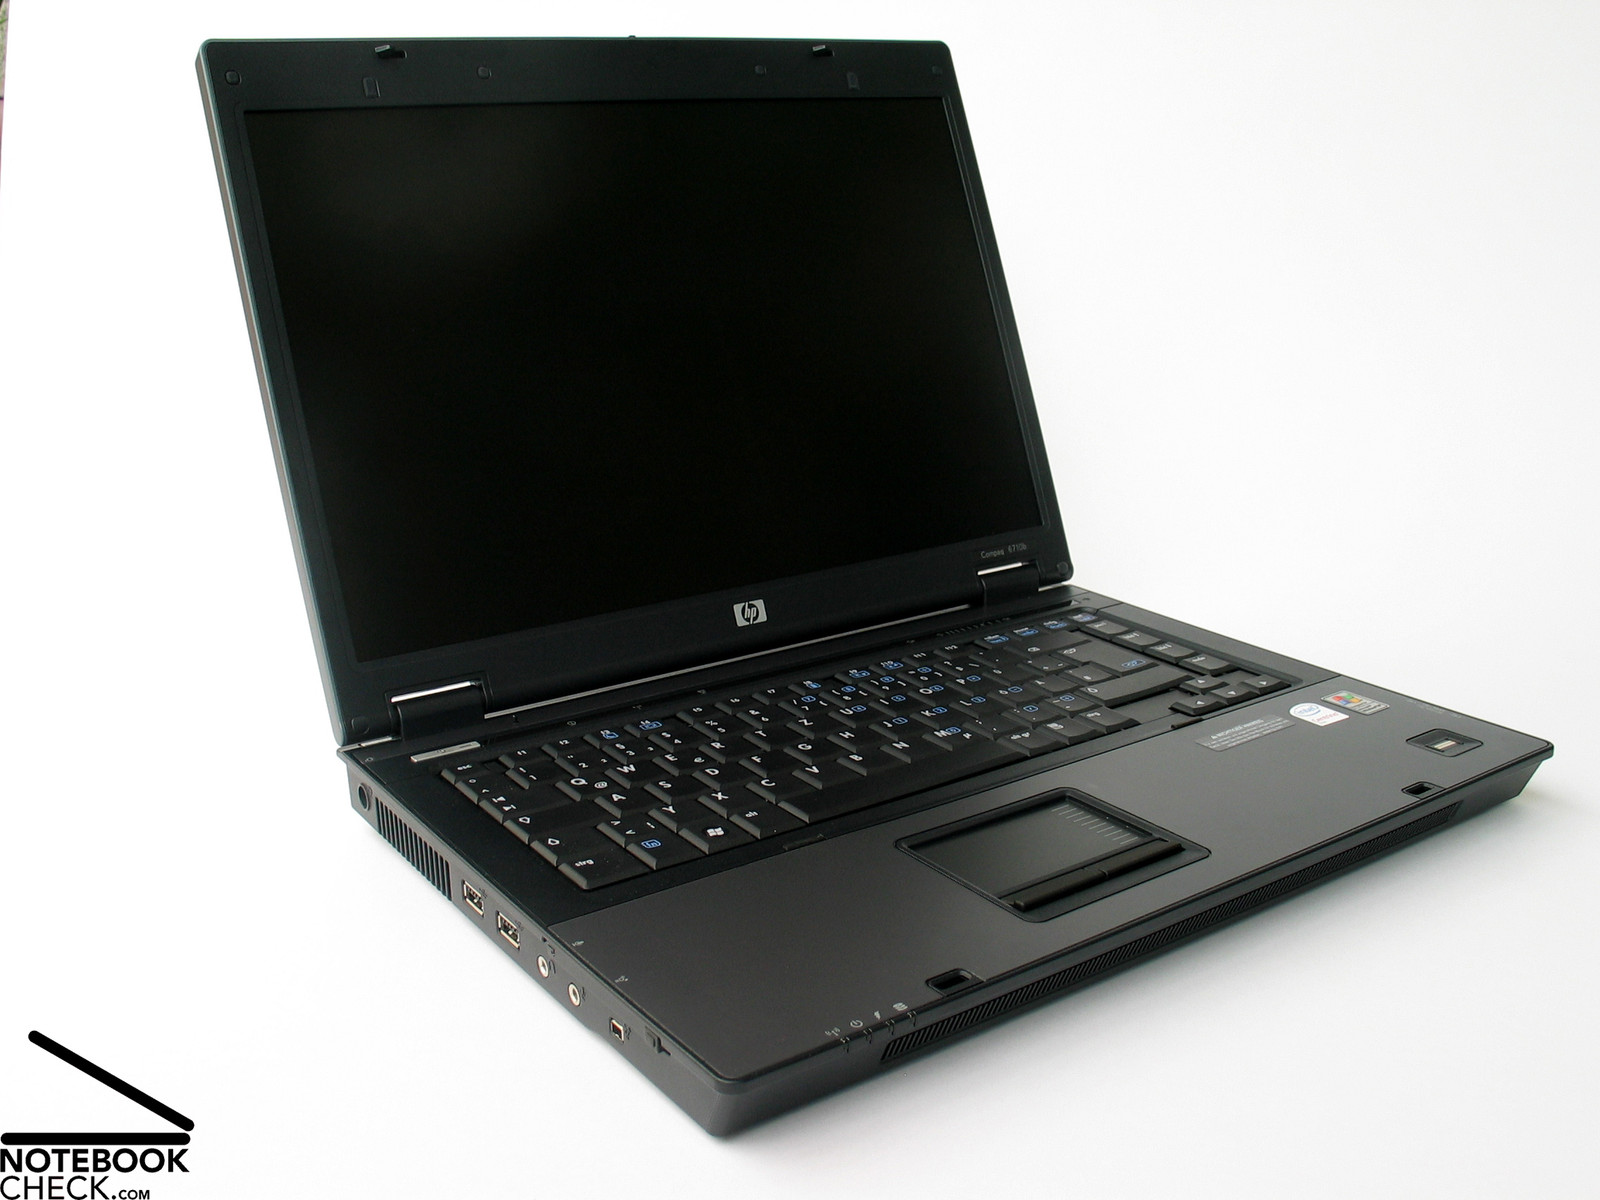 HP COMPAQ 6710B NOTEBOOK PC DRIVER FOR WINDOWS DOWNLOAD